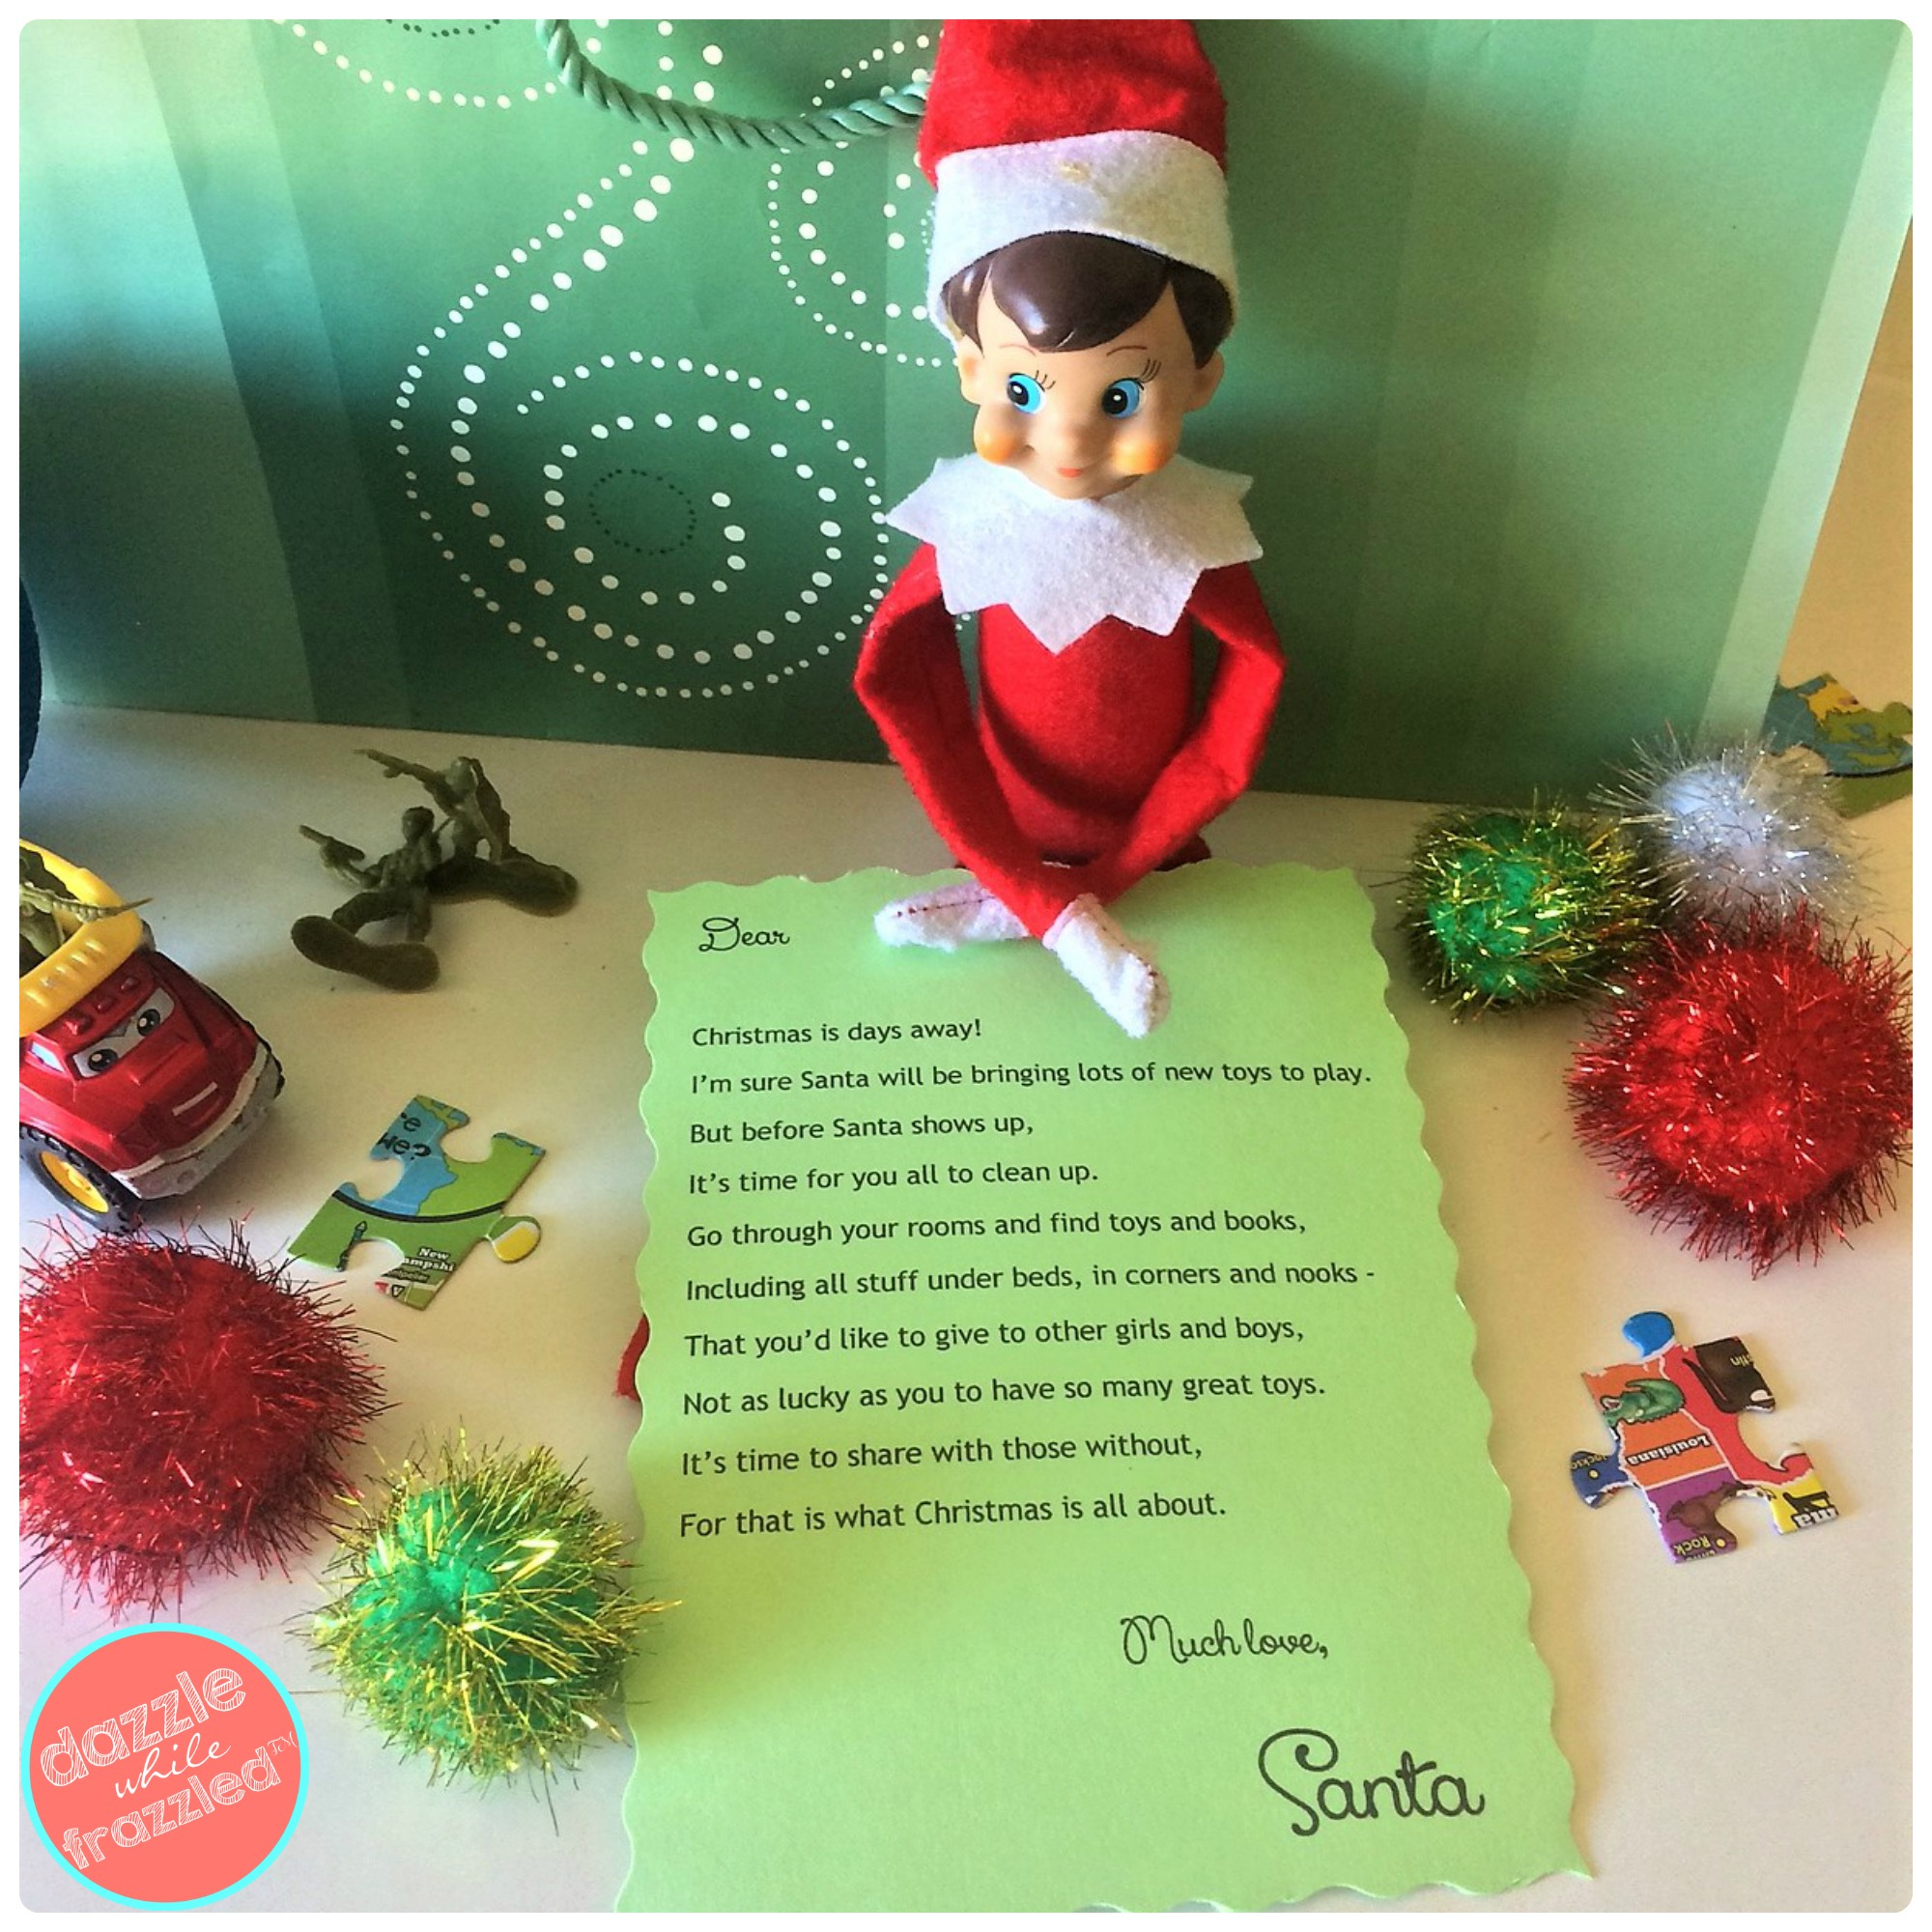 How To Toy Declutter With Free Printable Santa Note - - Free Printable Christmas Photo Collage